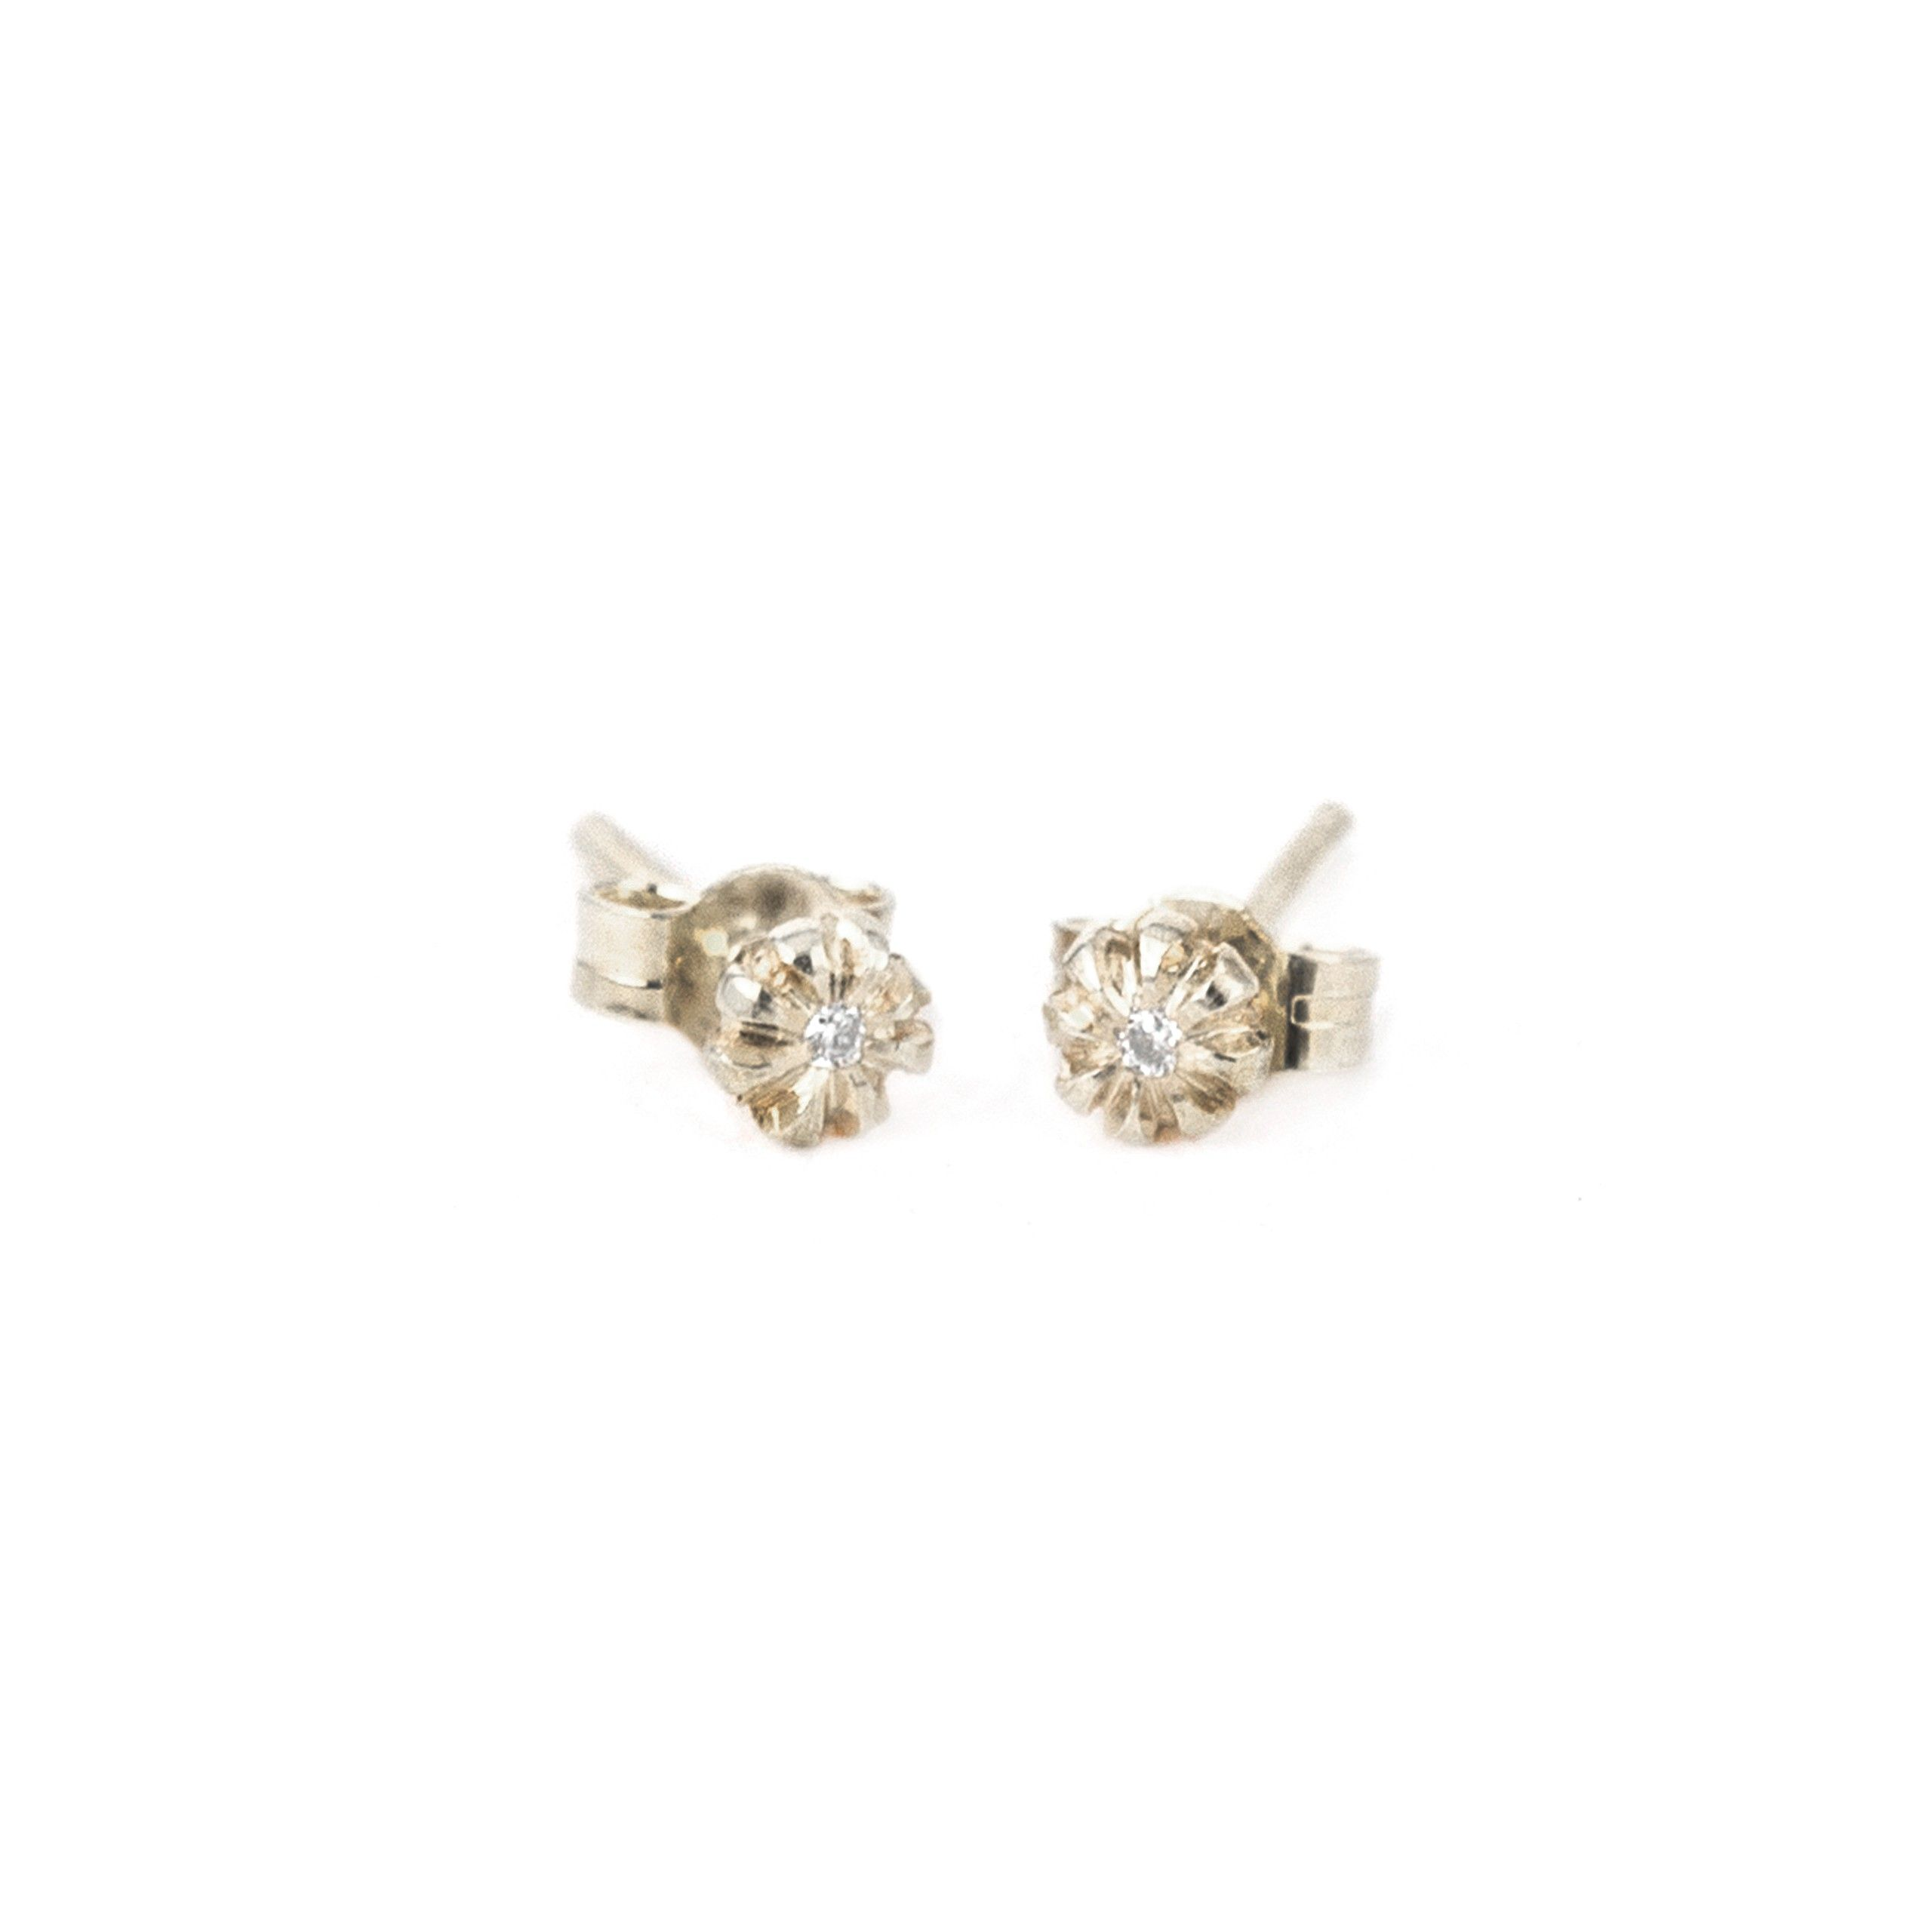 Alex Monroe Jewelry Baby Bud Stud Earrings W Tiny Diamonds